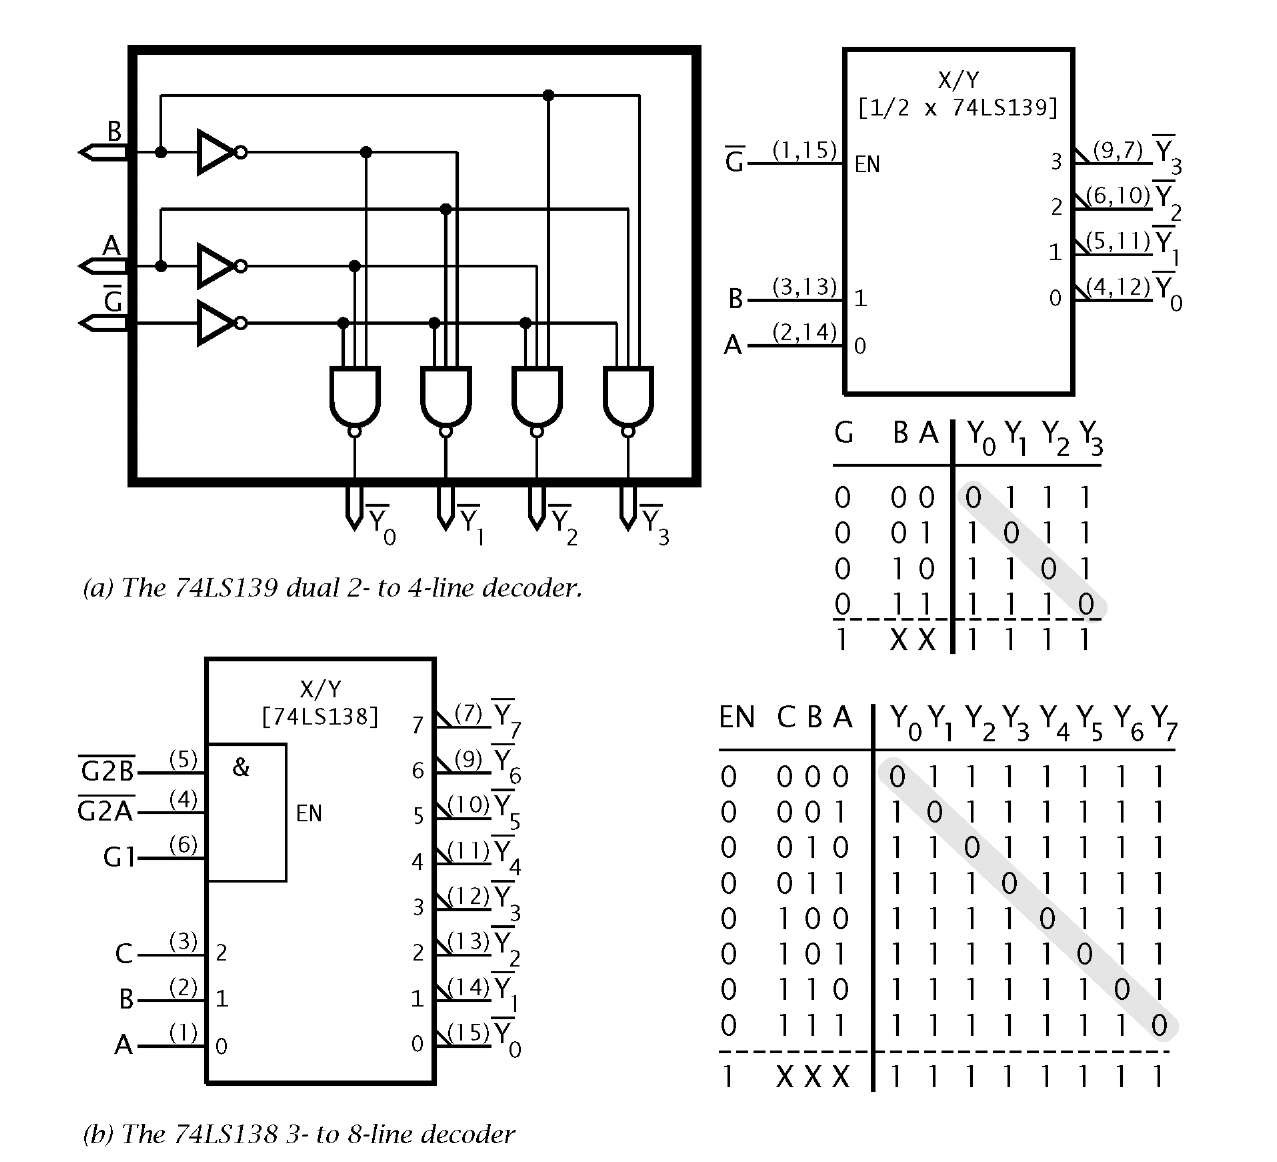 Logic Circuitry Part 1 Pic Microcontroller